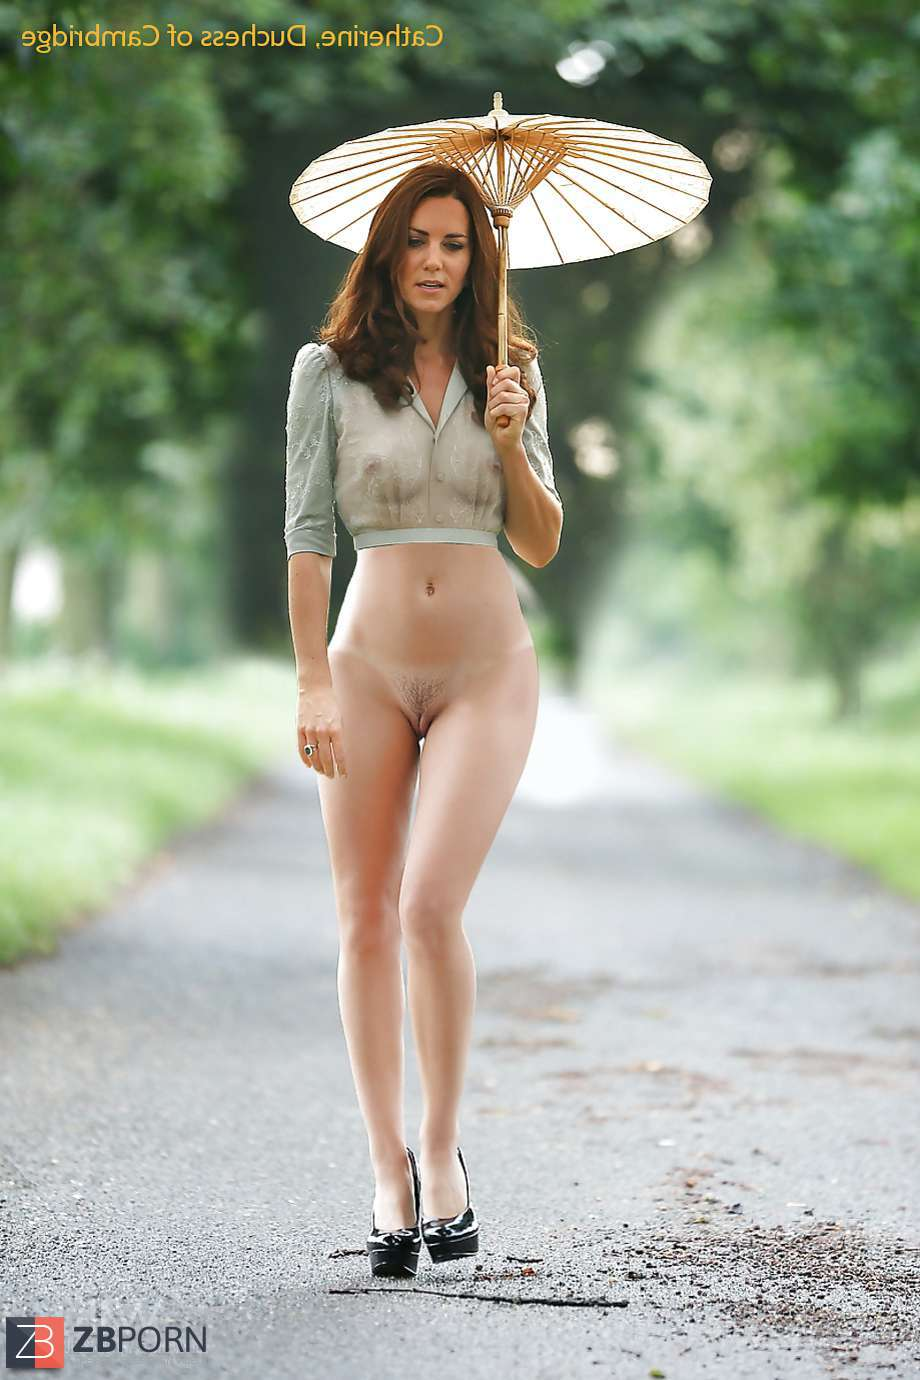 free english adults movies watch online